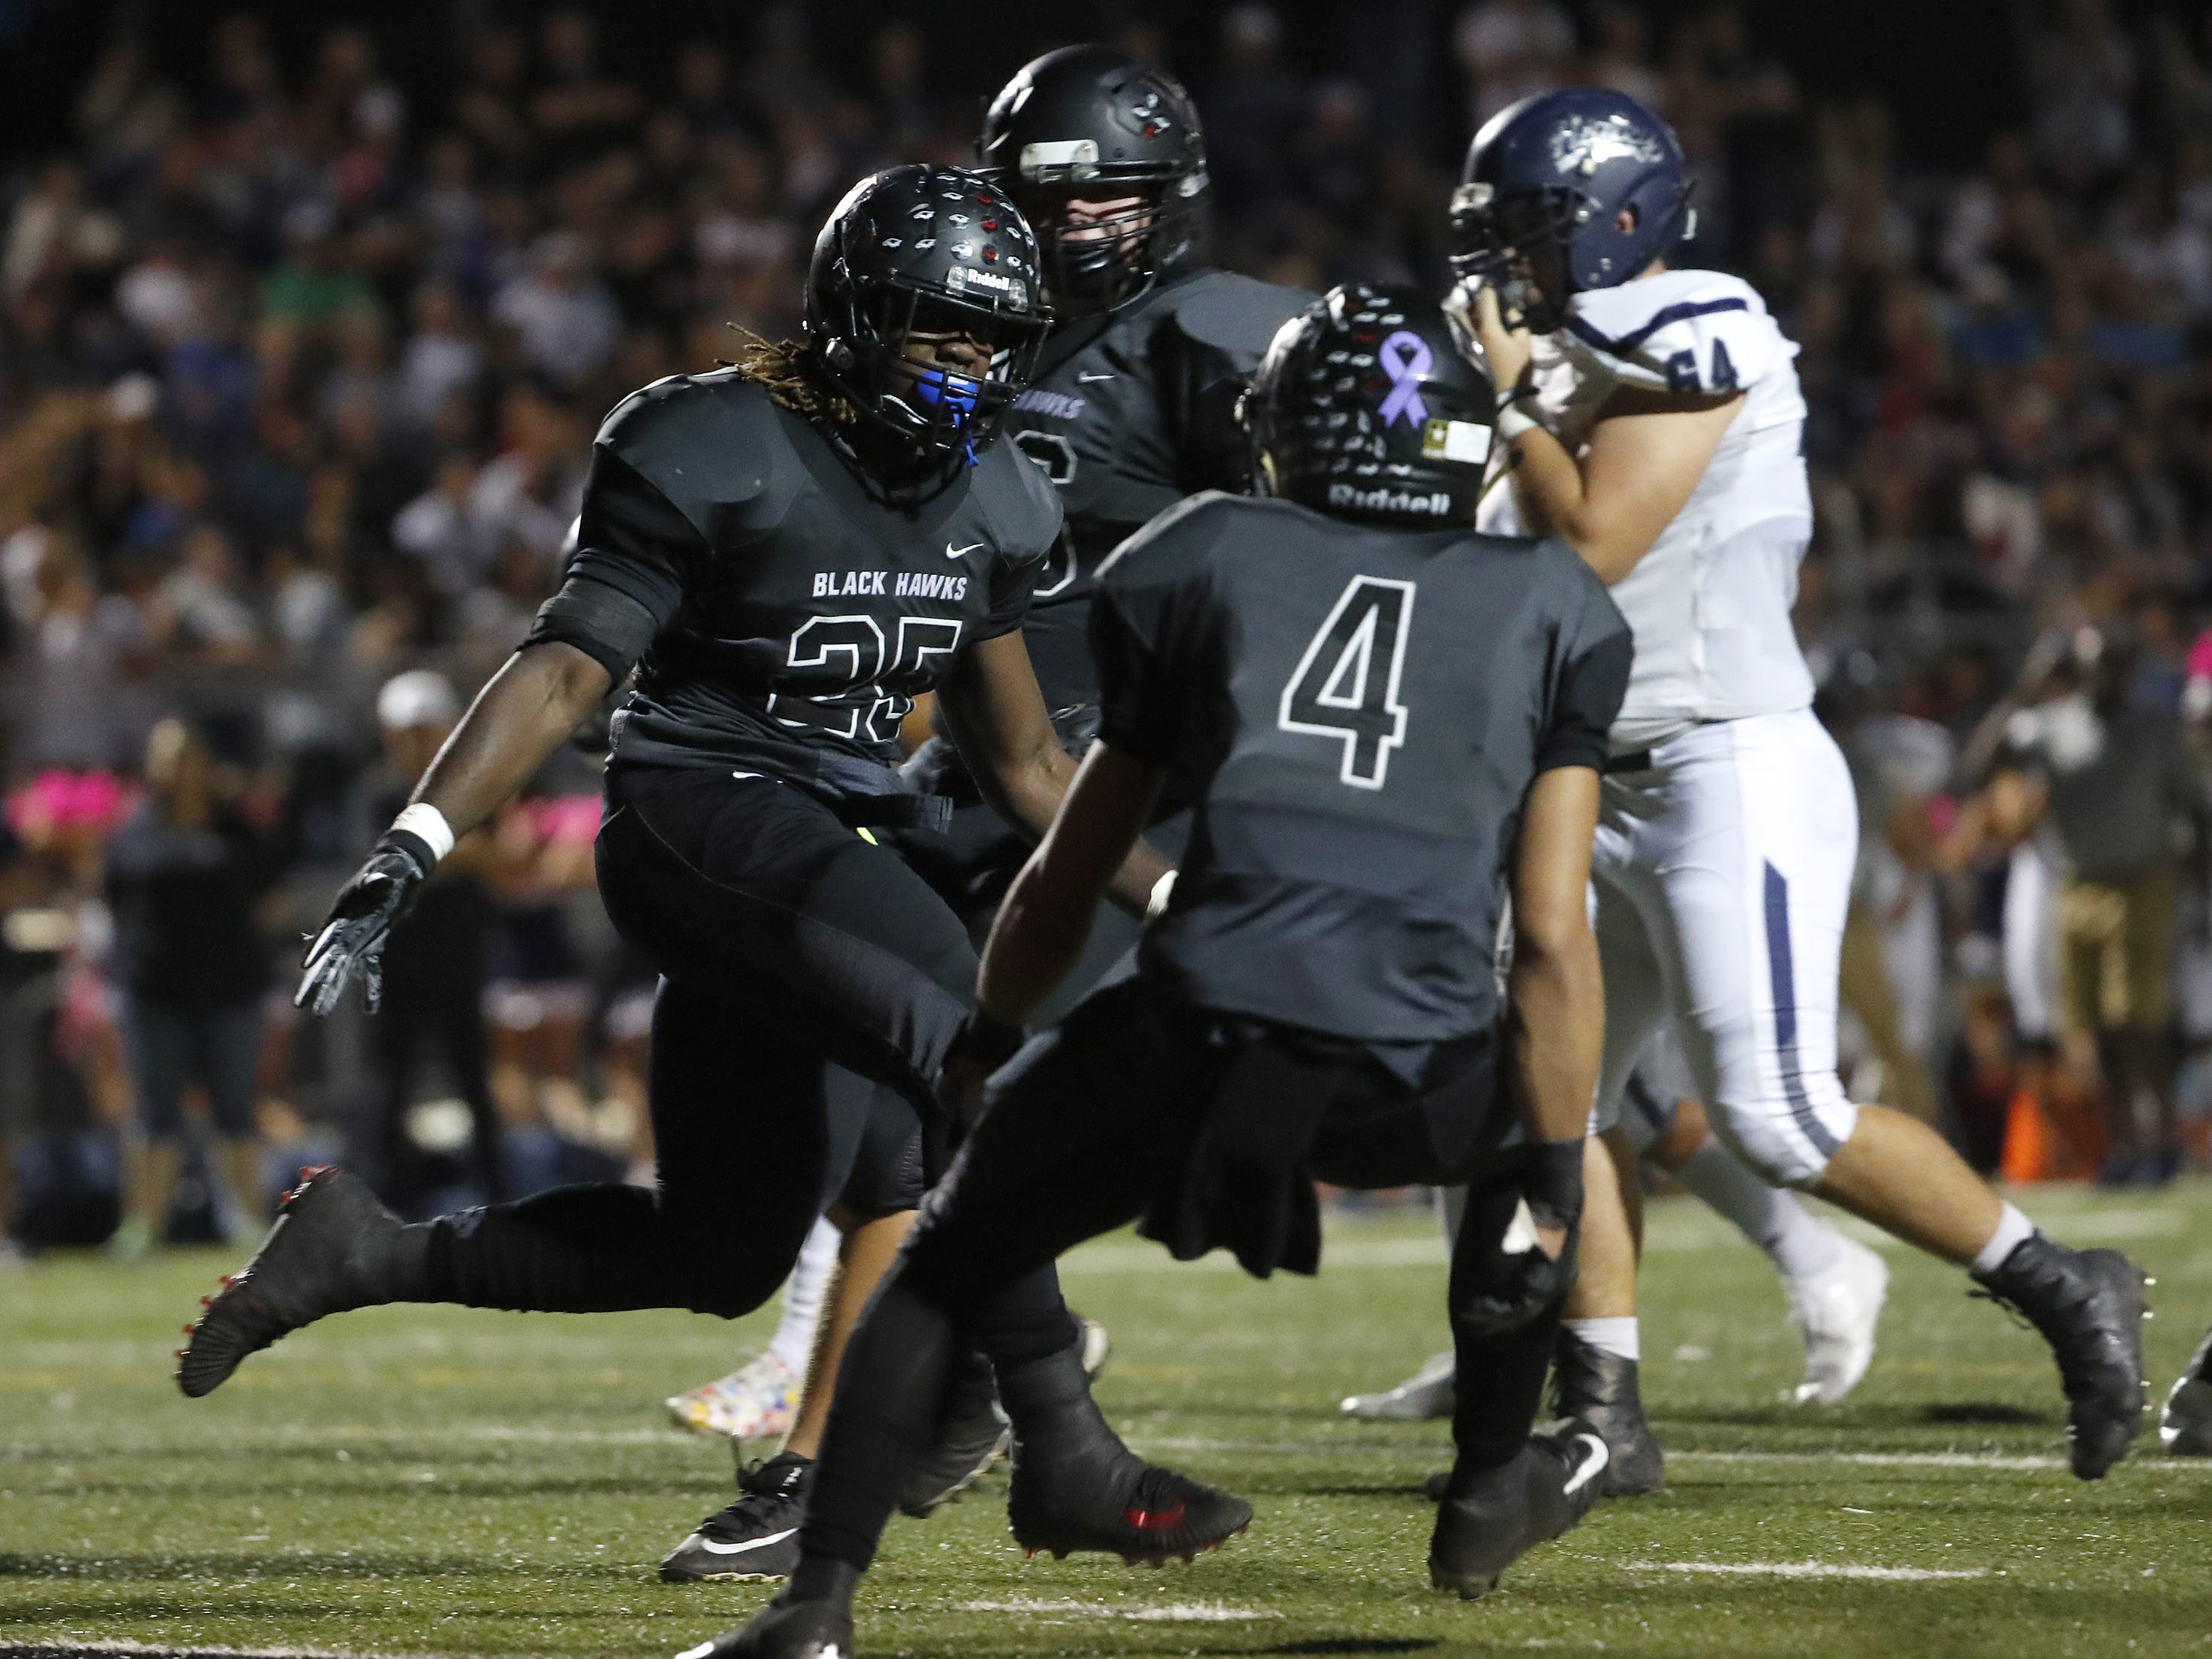 Williams Field's Jaden Thompson (25) celebrates with 	Elijah Reed (4) after scoring a touchdown against Higley during the first half at Williams Field High School in Gilbert, Ariz. on October 26, 2018.